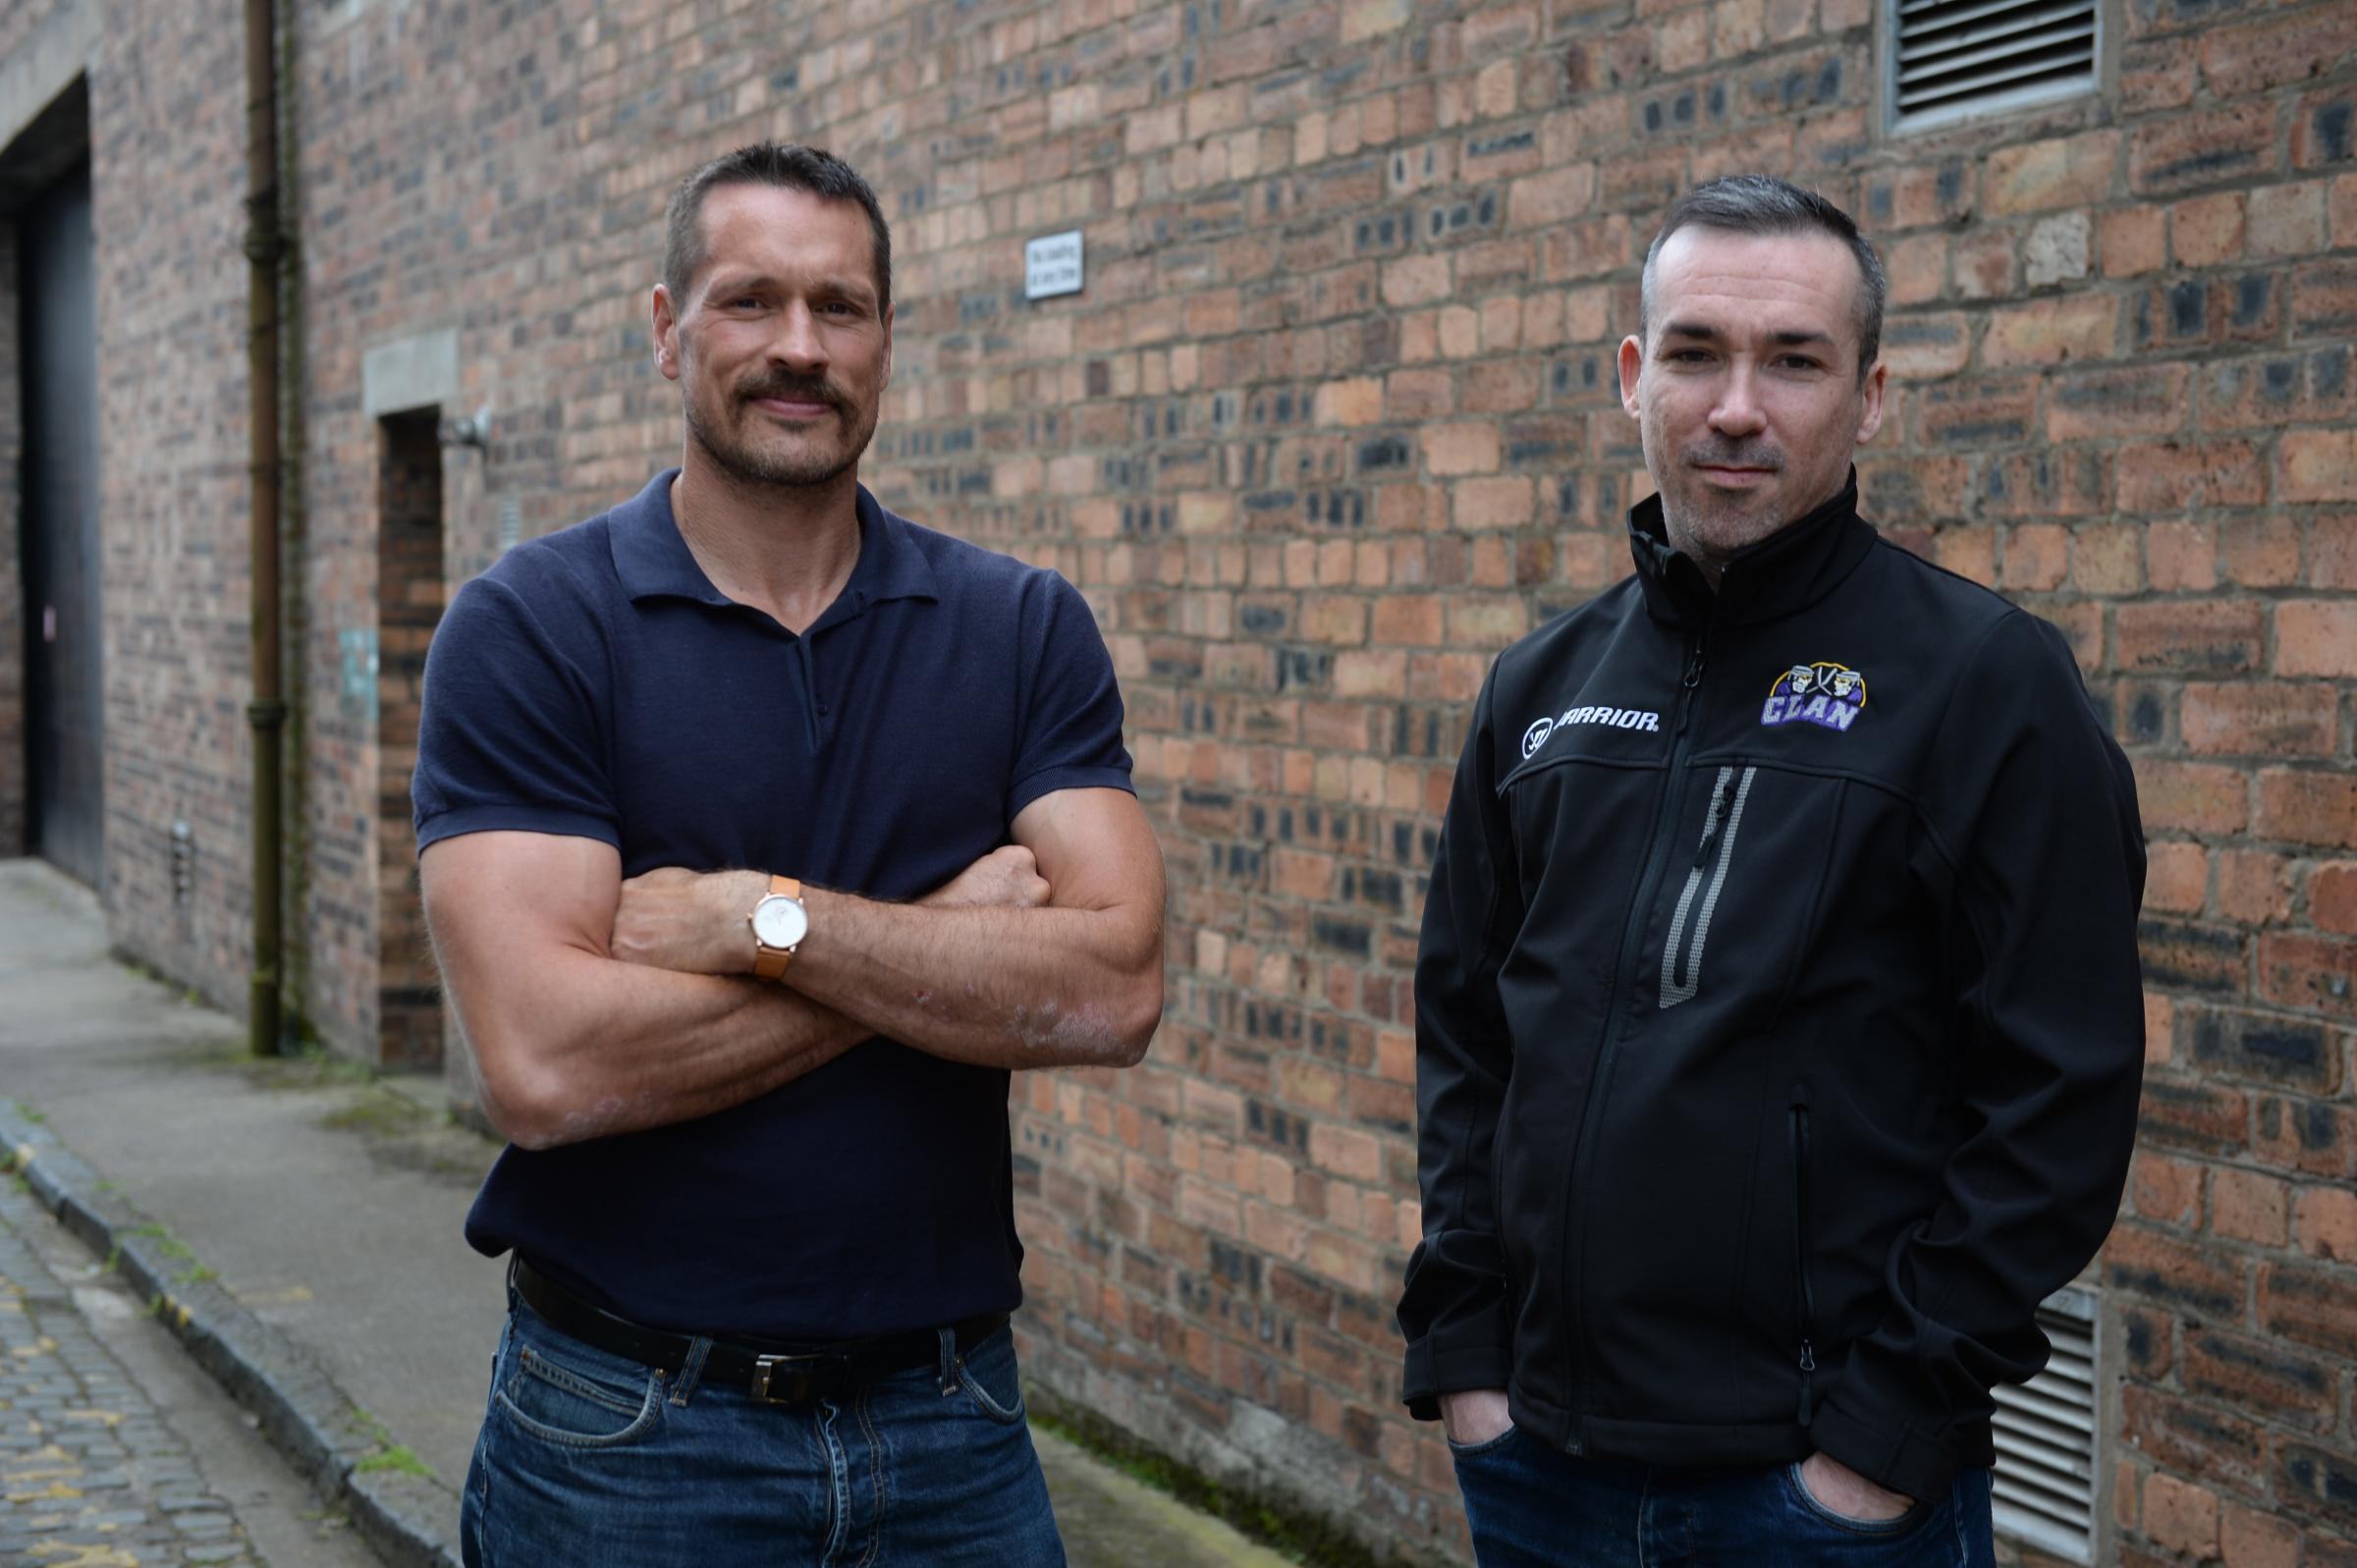 Braehead Clan ..John Tripp (left) new Braehead Clan head coach, and Gareth Chalmers, hockey and operations director... 11/8/17. (Photo by Kirsty Anderson/Herald & Times) - KA..